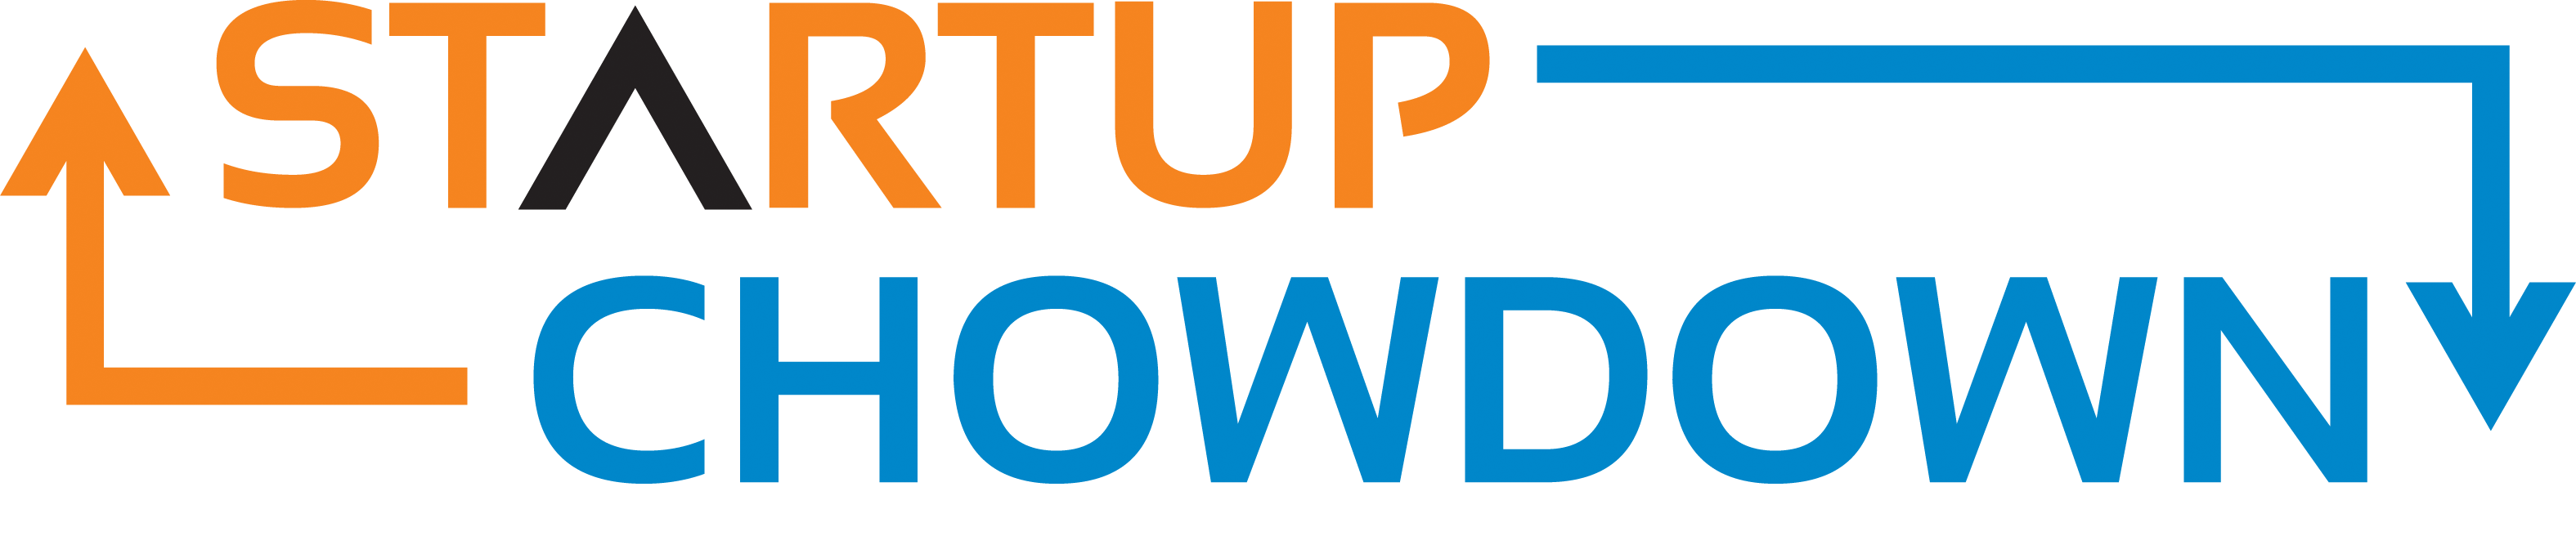 STARTUPCHOWDOWNlogo_transparent_background